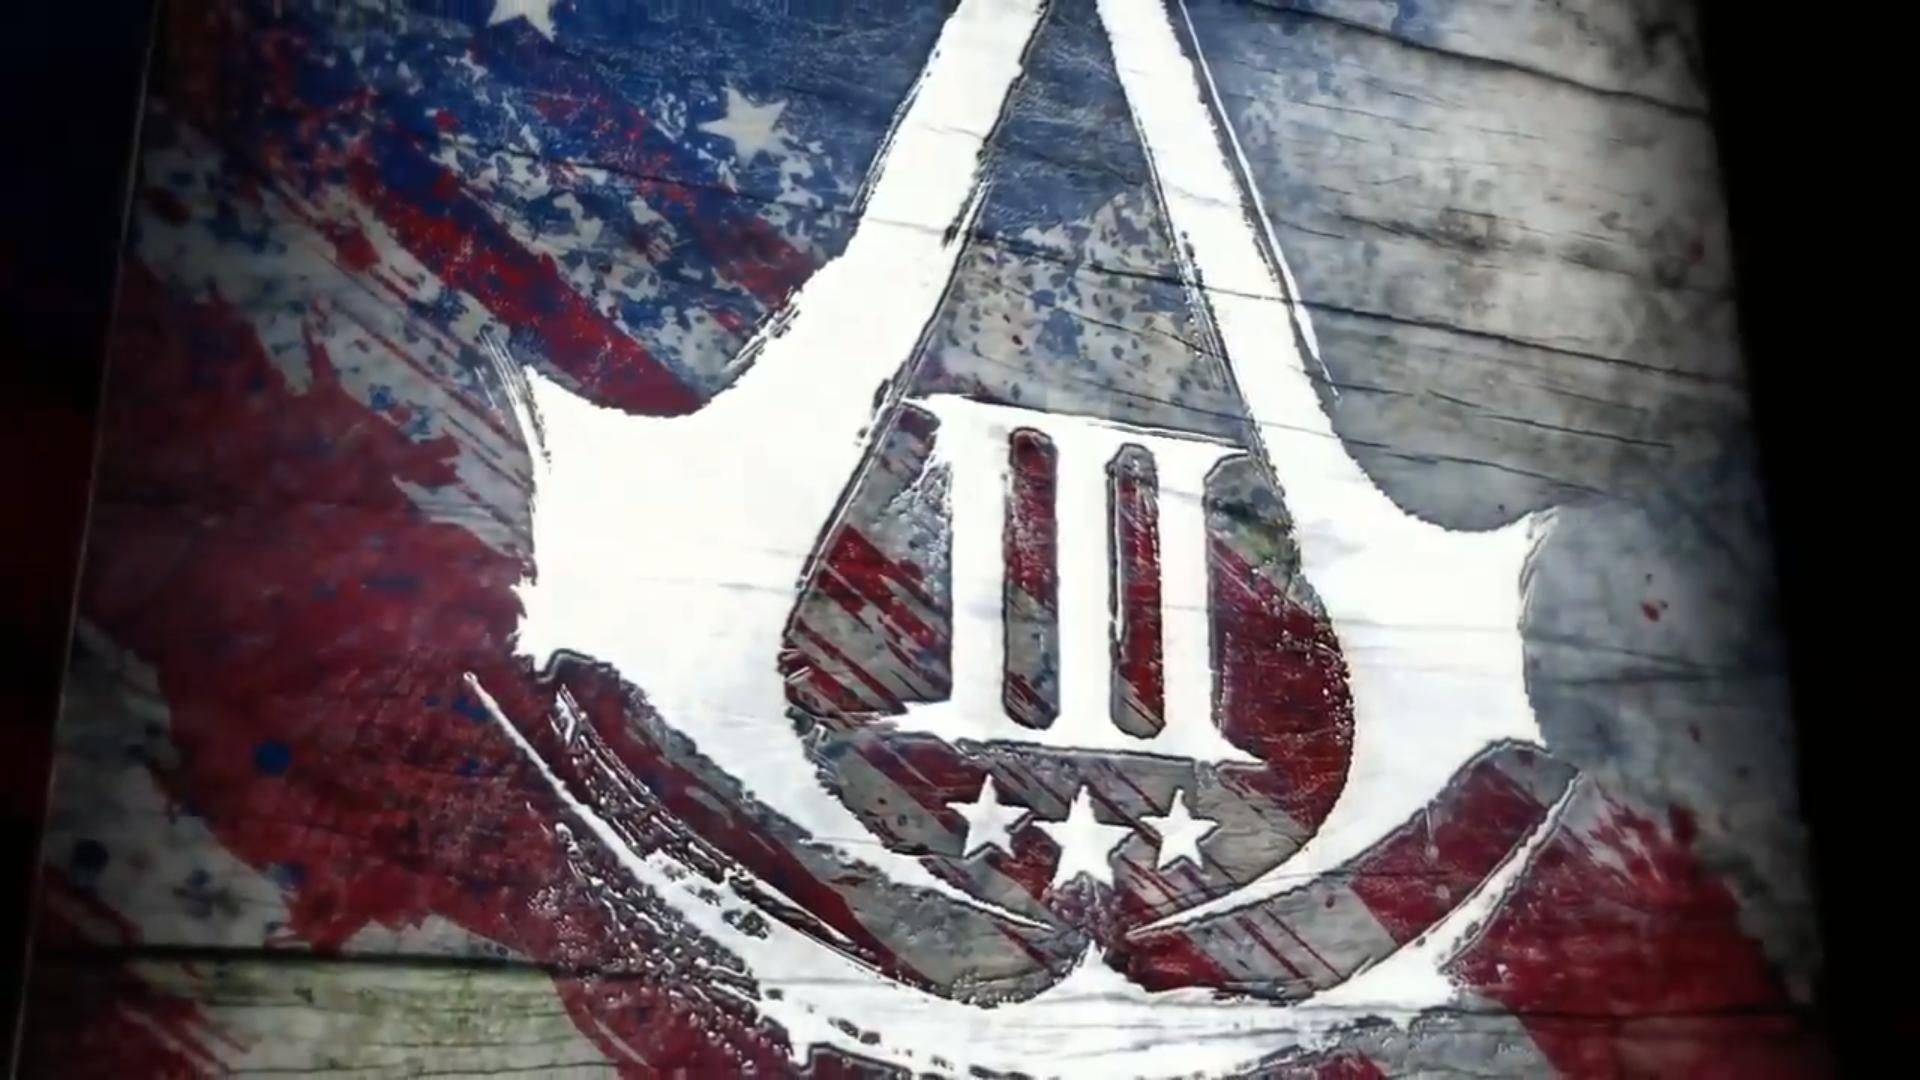 Assassins Creed 3 Wallpapers - Wallpaper Cave